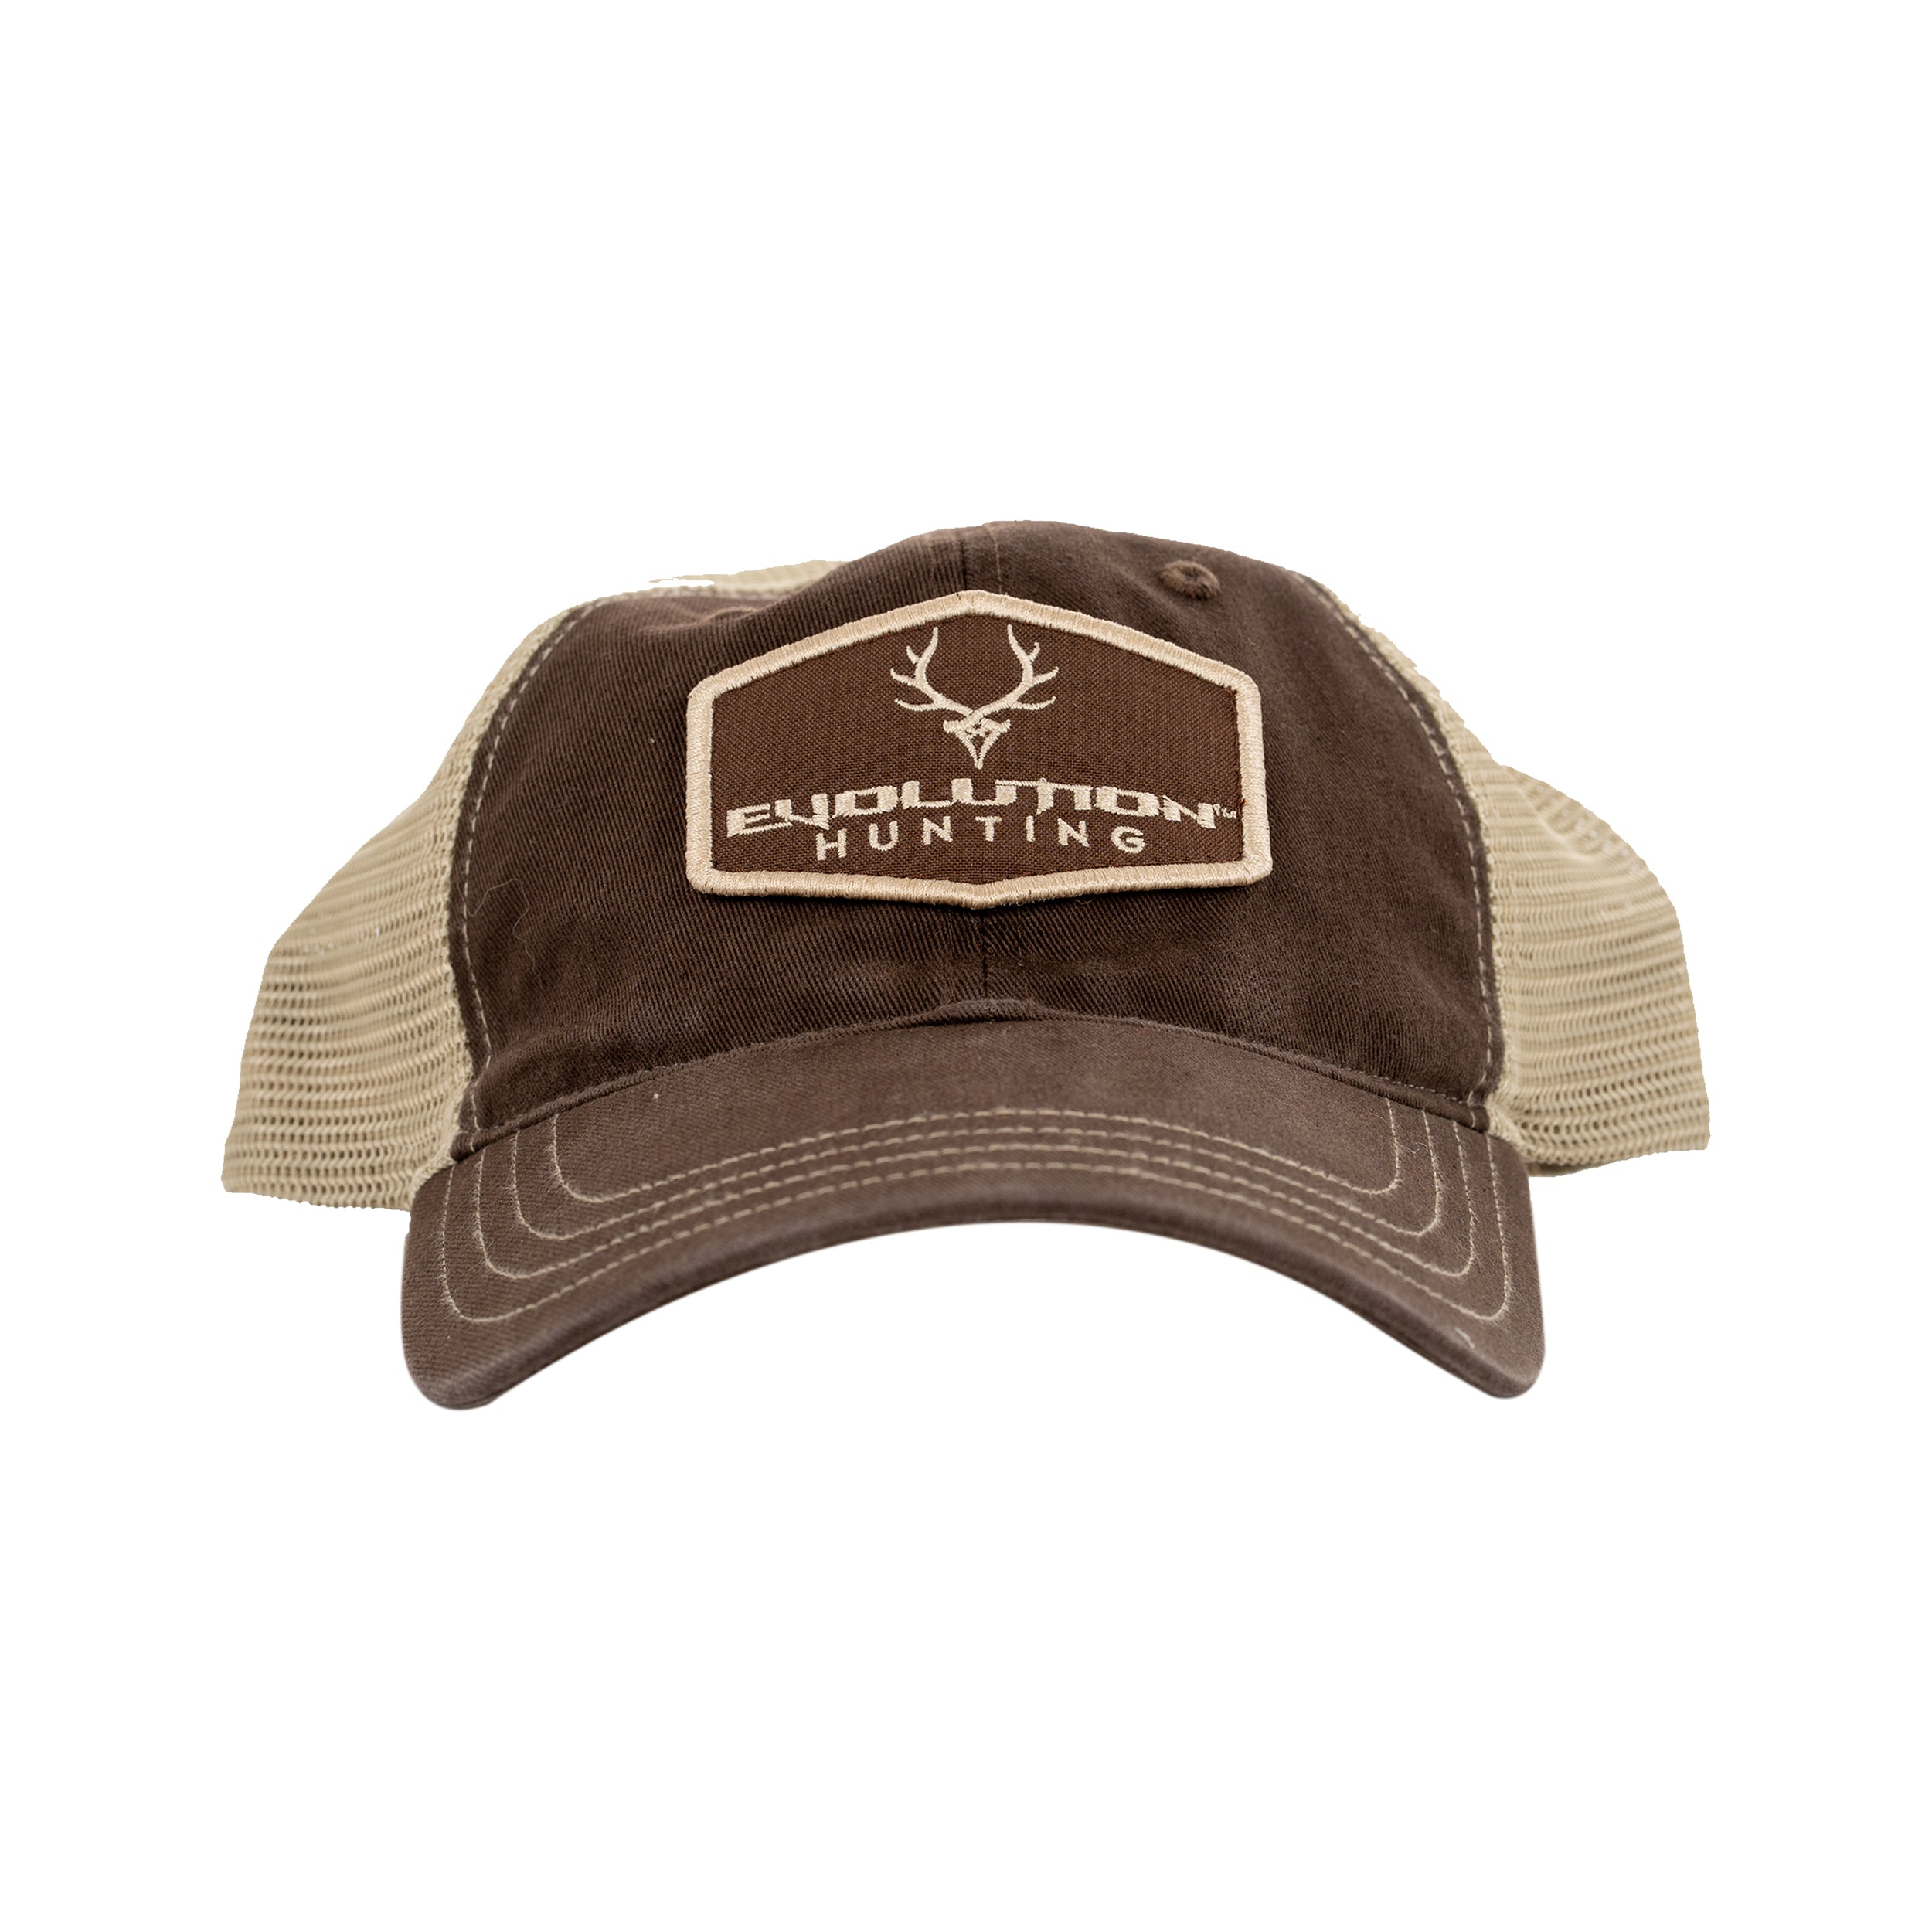 Evolution Hunting Hat - Unstructured